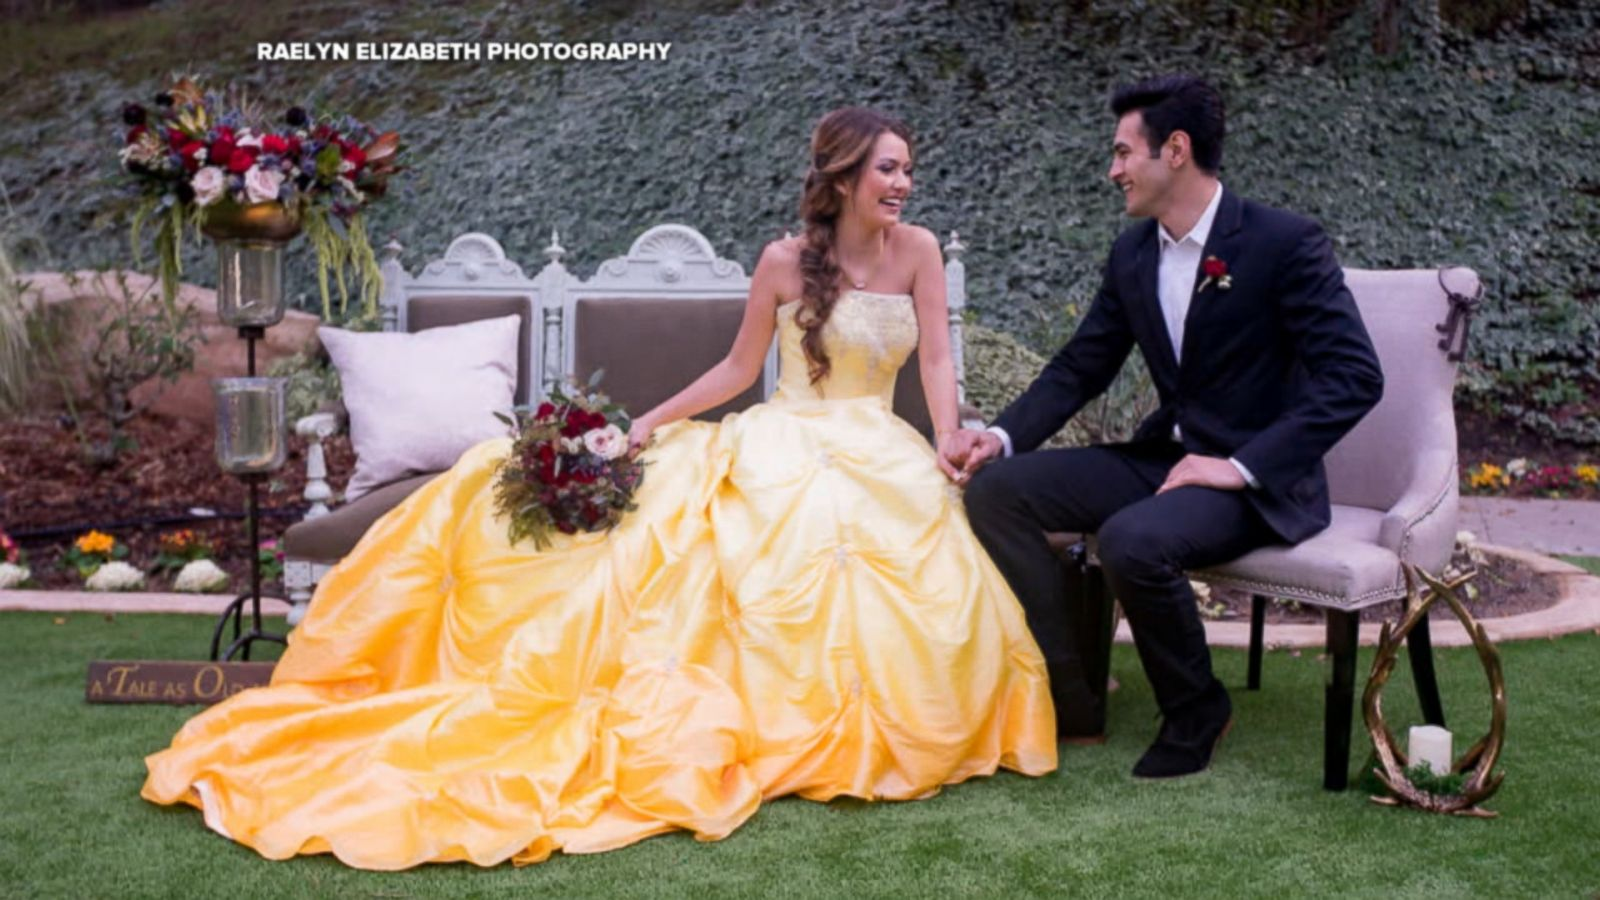 Enchanting Beauty And The Beast Wedding Shoot Will Inspire Belle Themed Brides Abc News